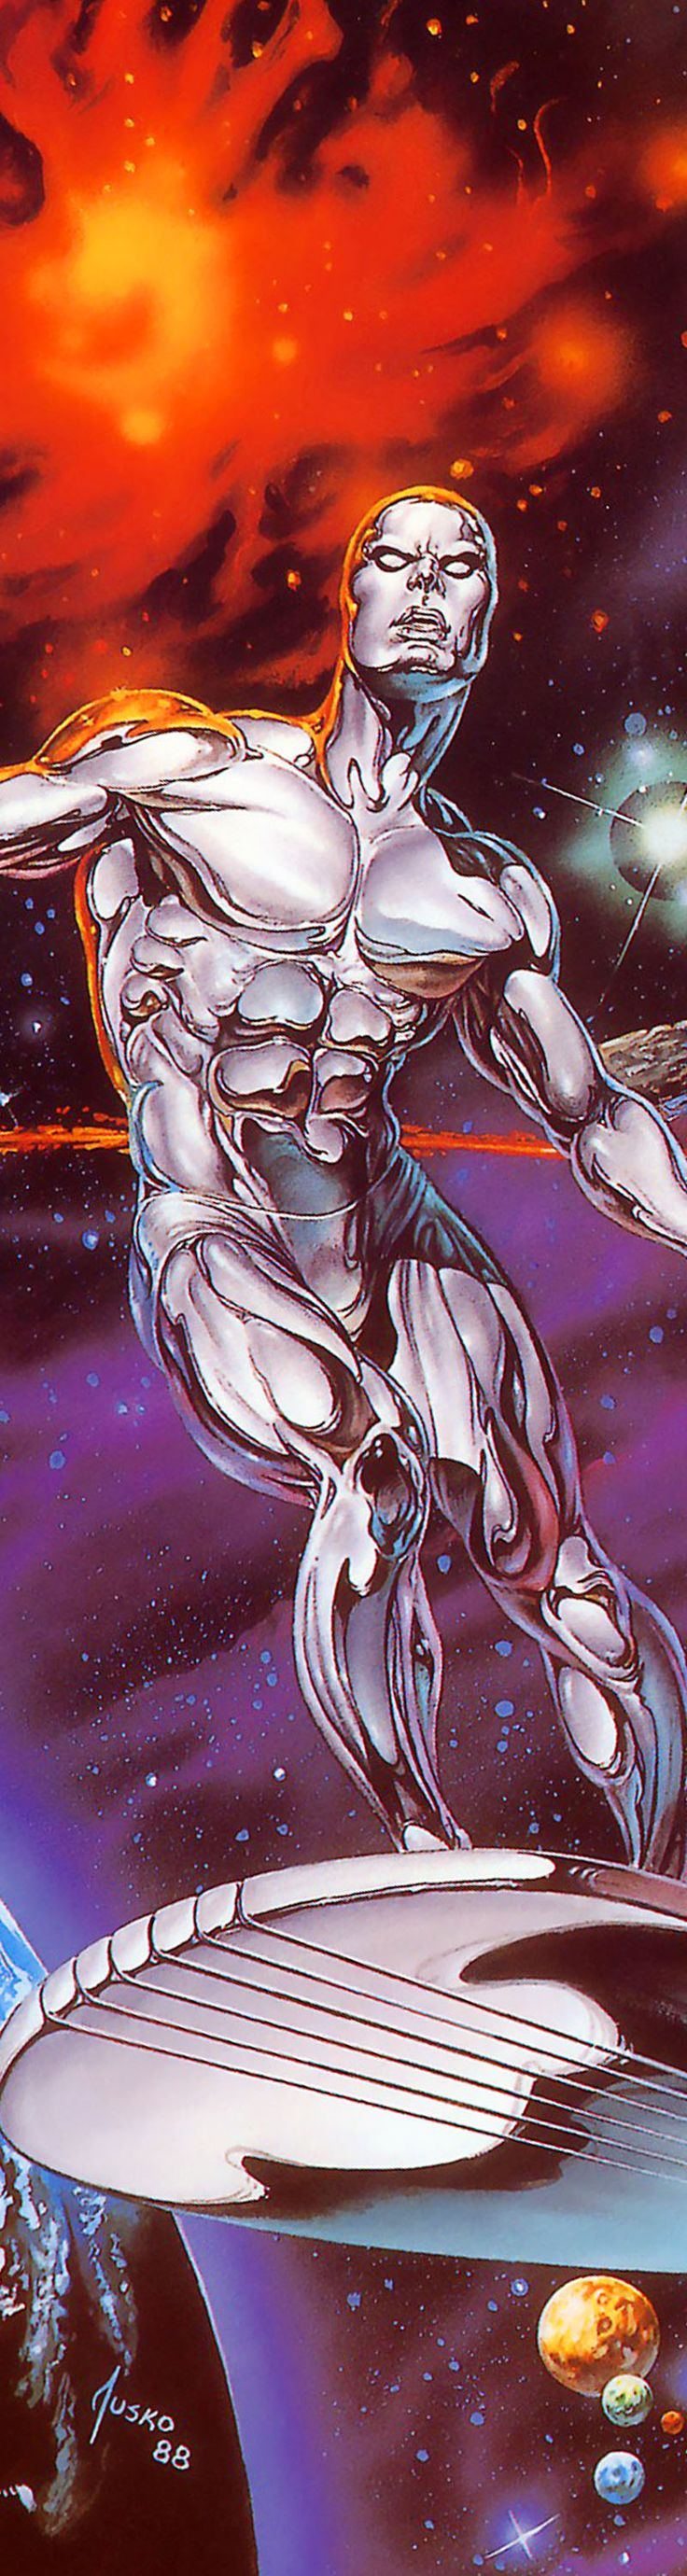 Silver Surfer - Joe Jusko                                                                                                                                                     More